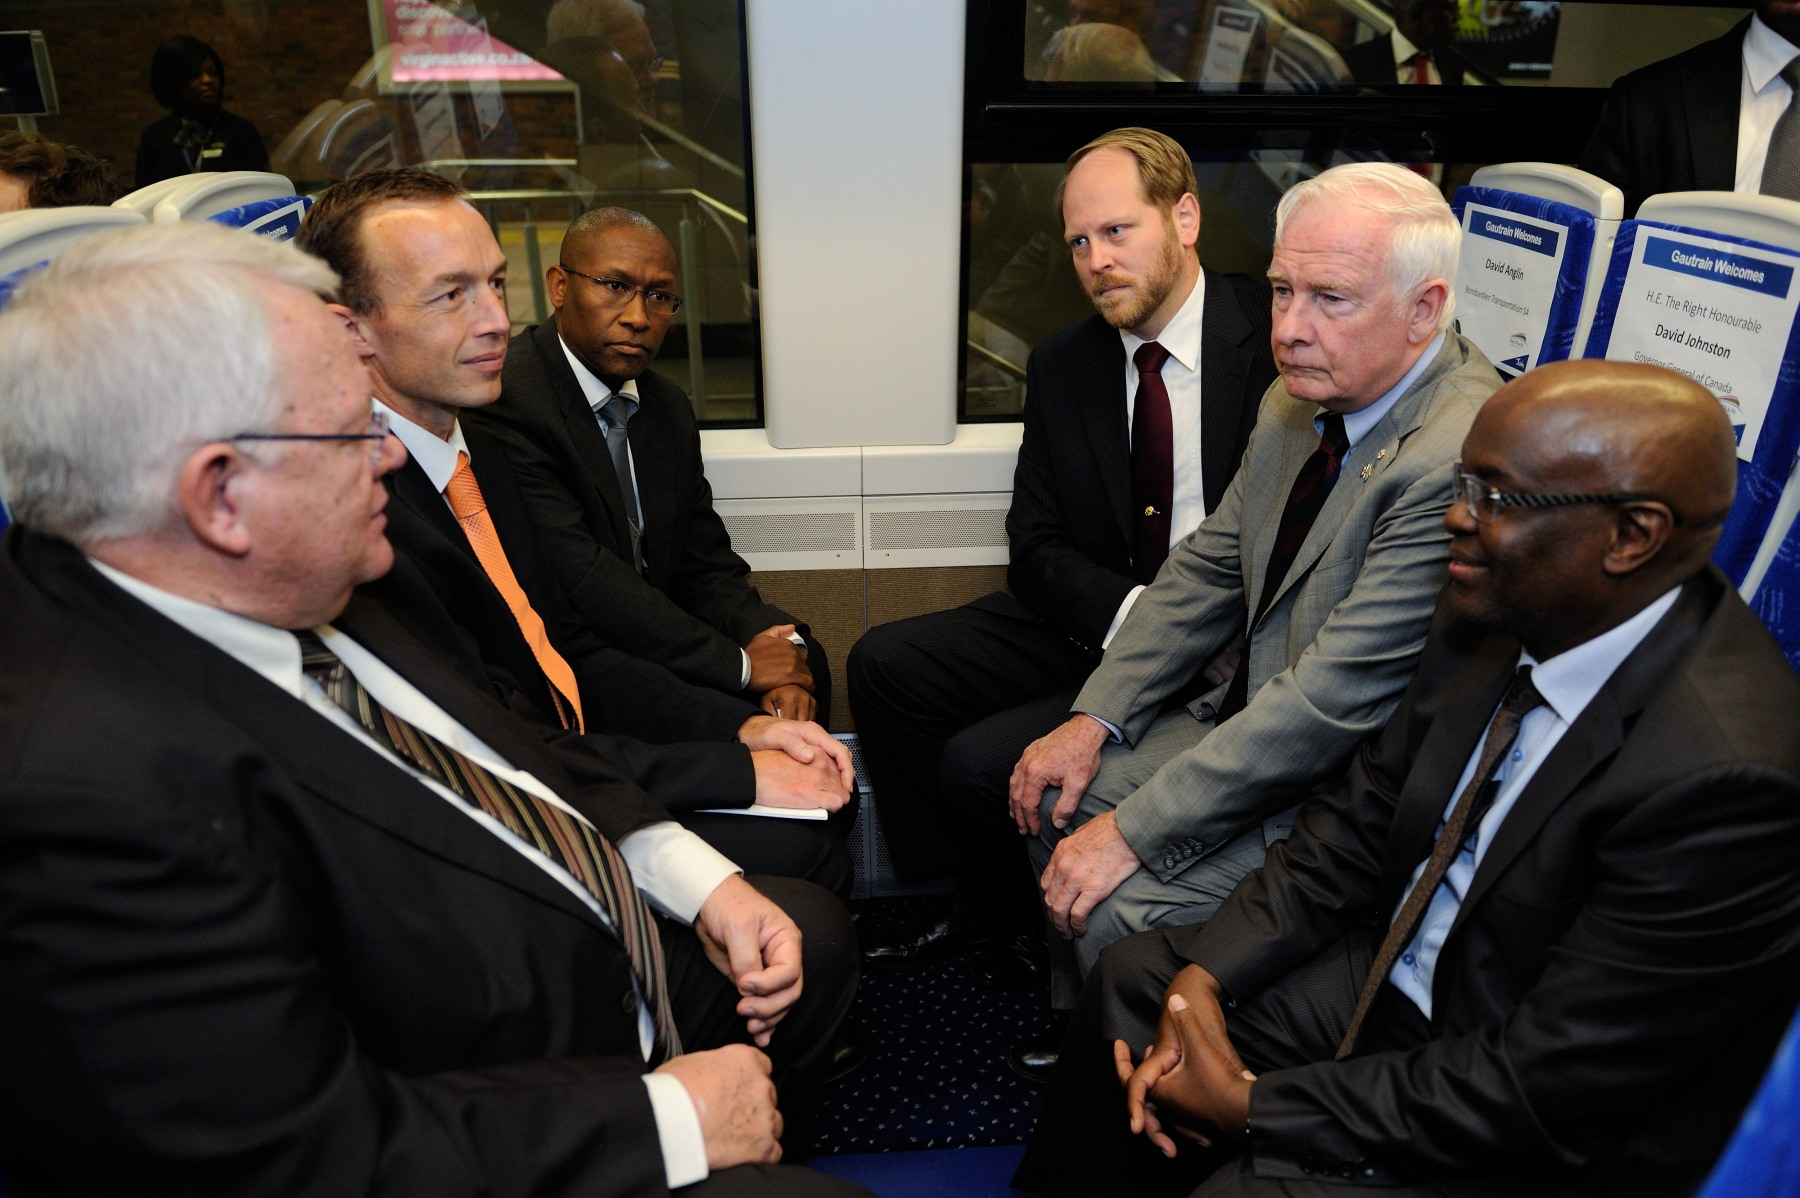 During his journey on the Gautrain, His Excellency had the opportunity to speak with representatives from Bombardier, Bombela and Gautrain Management Company.